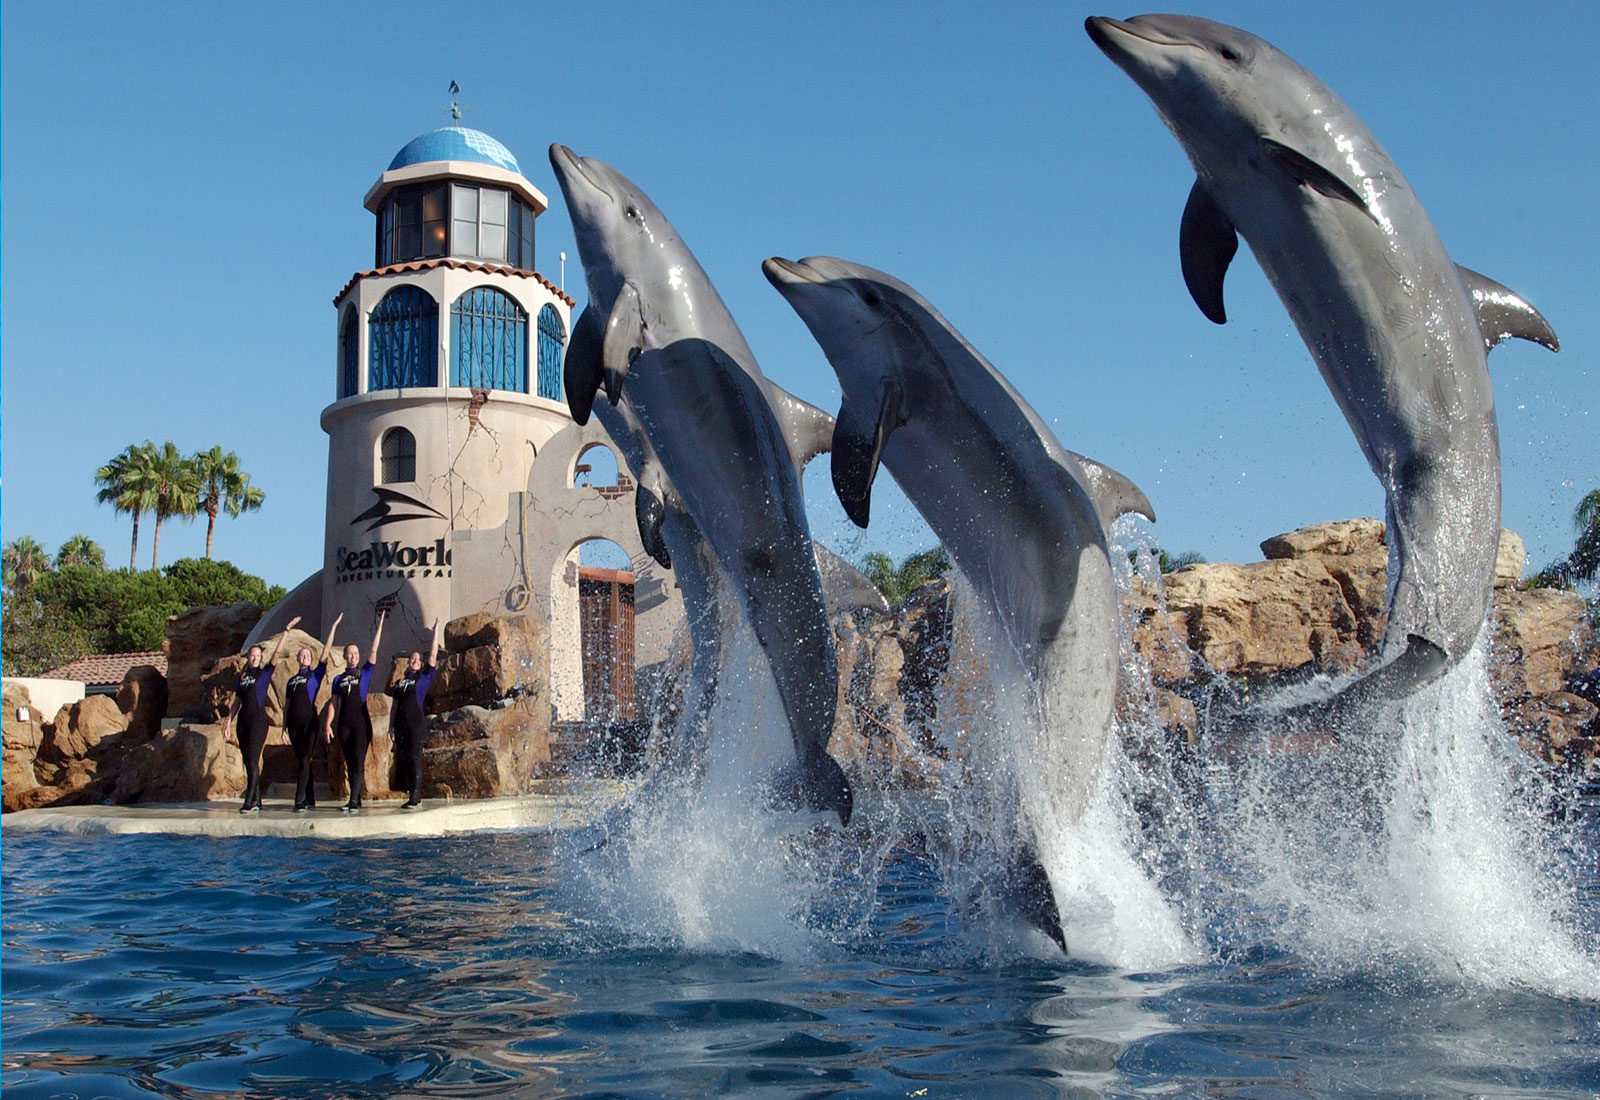 SeaWorld San Diego Rides Dazzling Shows and Animal Exhibits